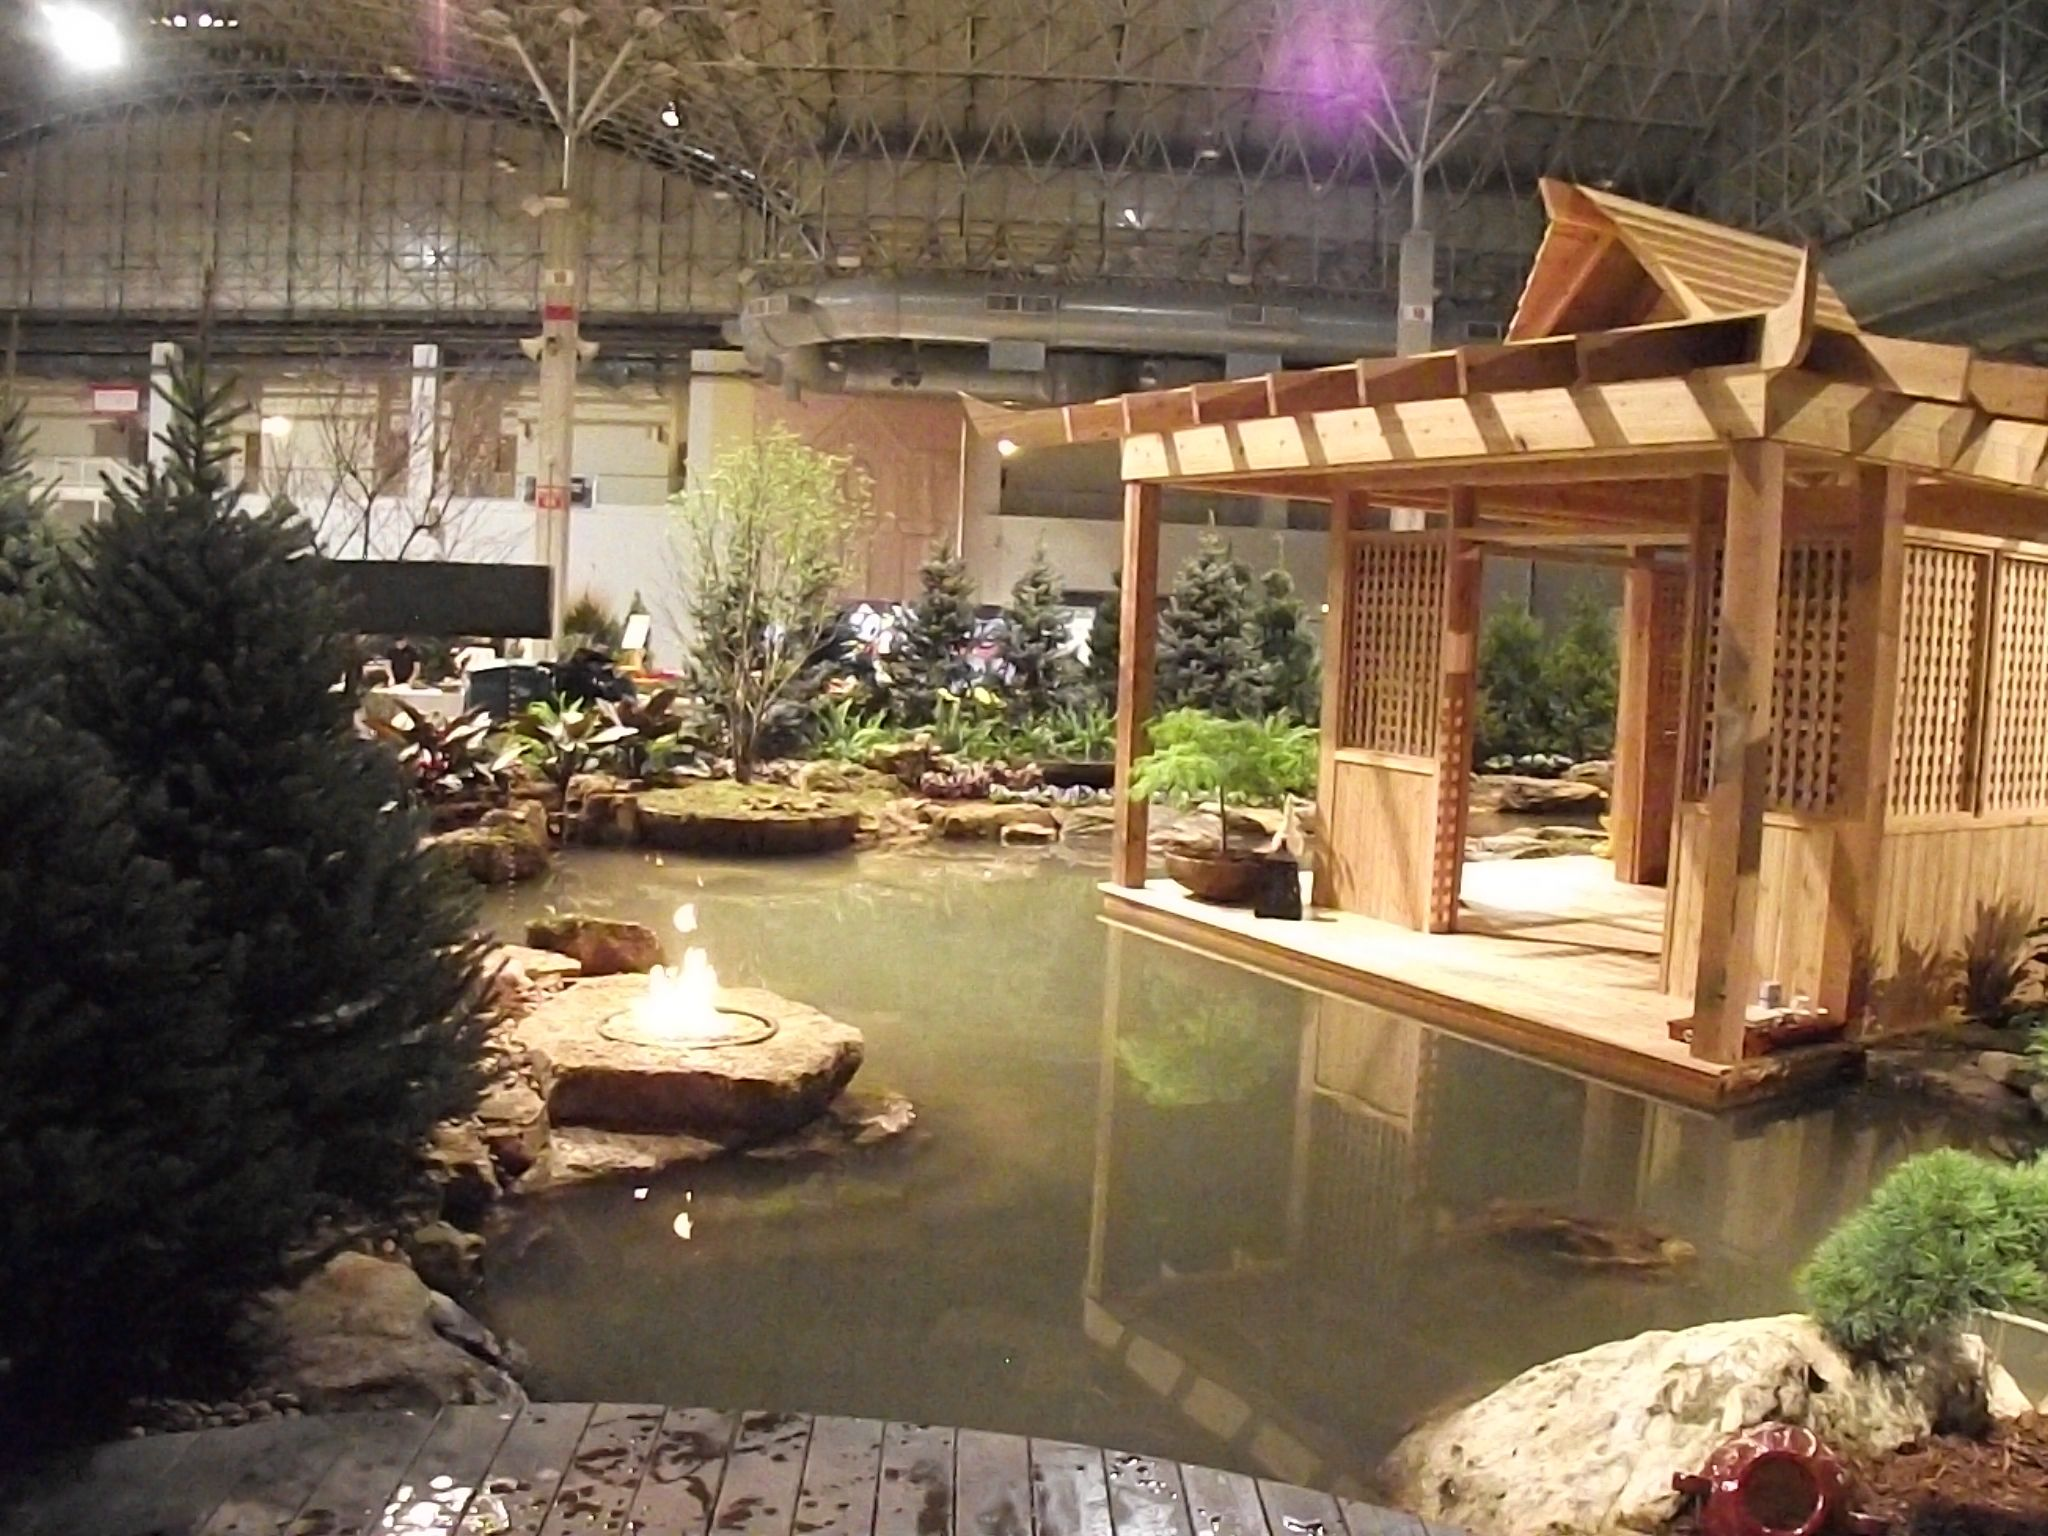 Part Of The Aquascape Display Garden At The 2014 Chicago Flower And Garden  Show.